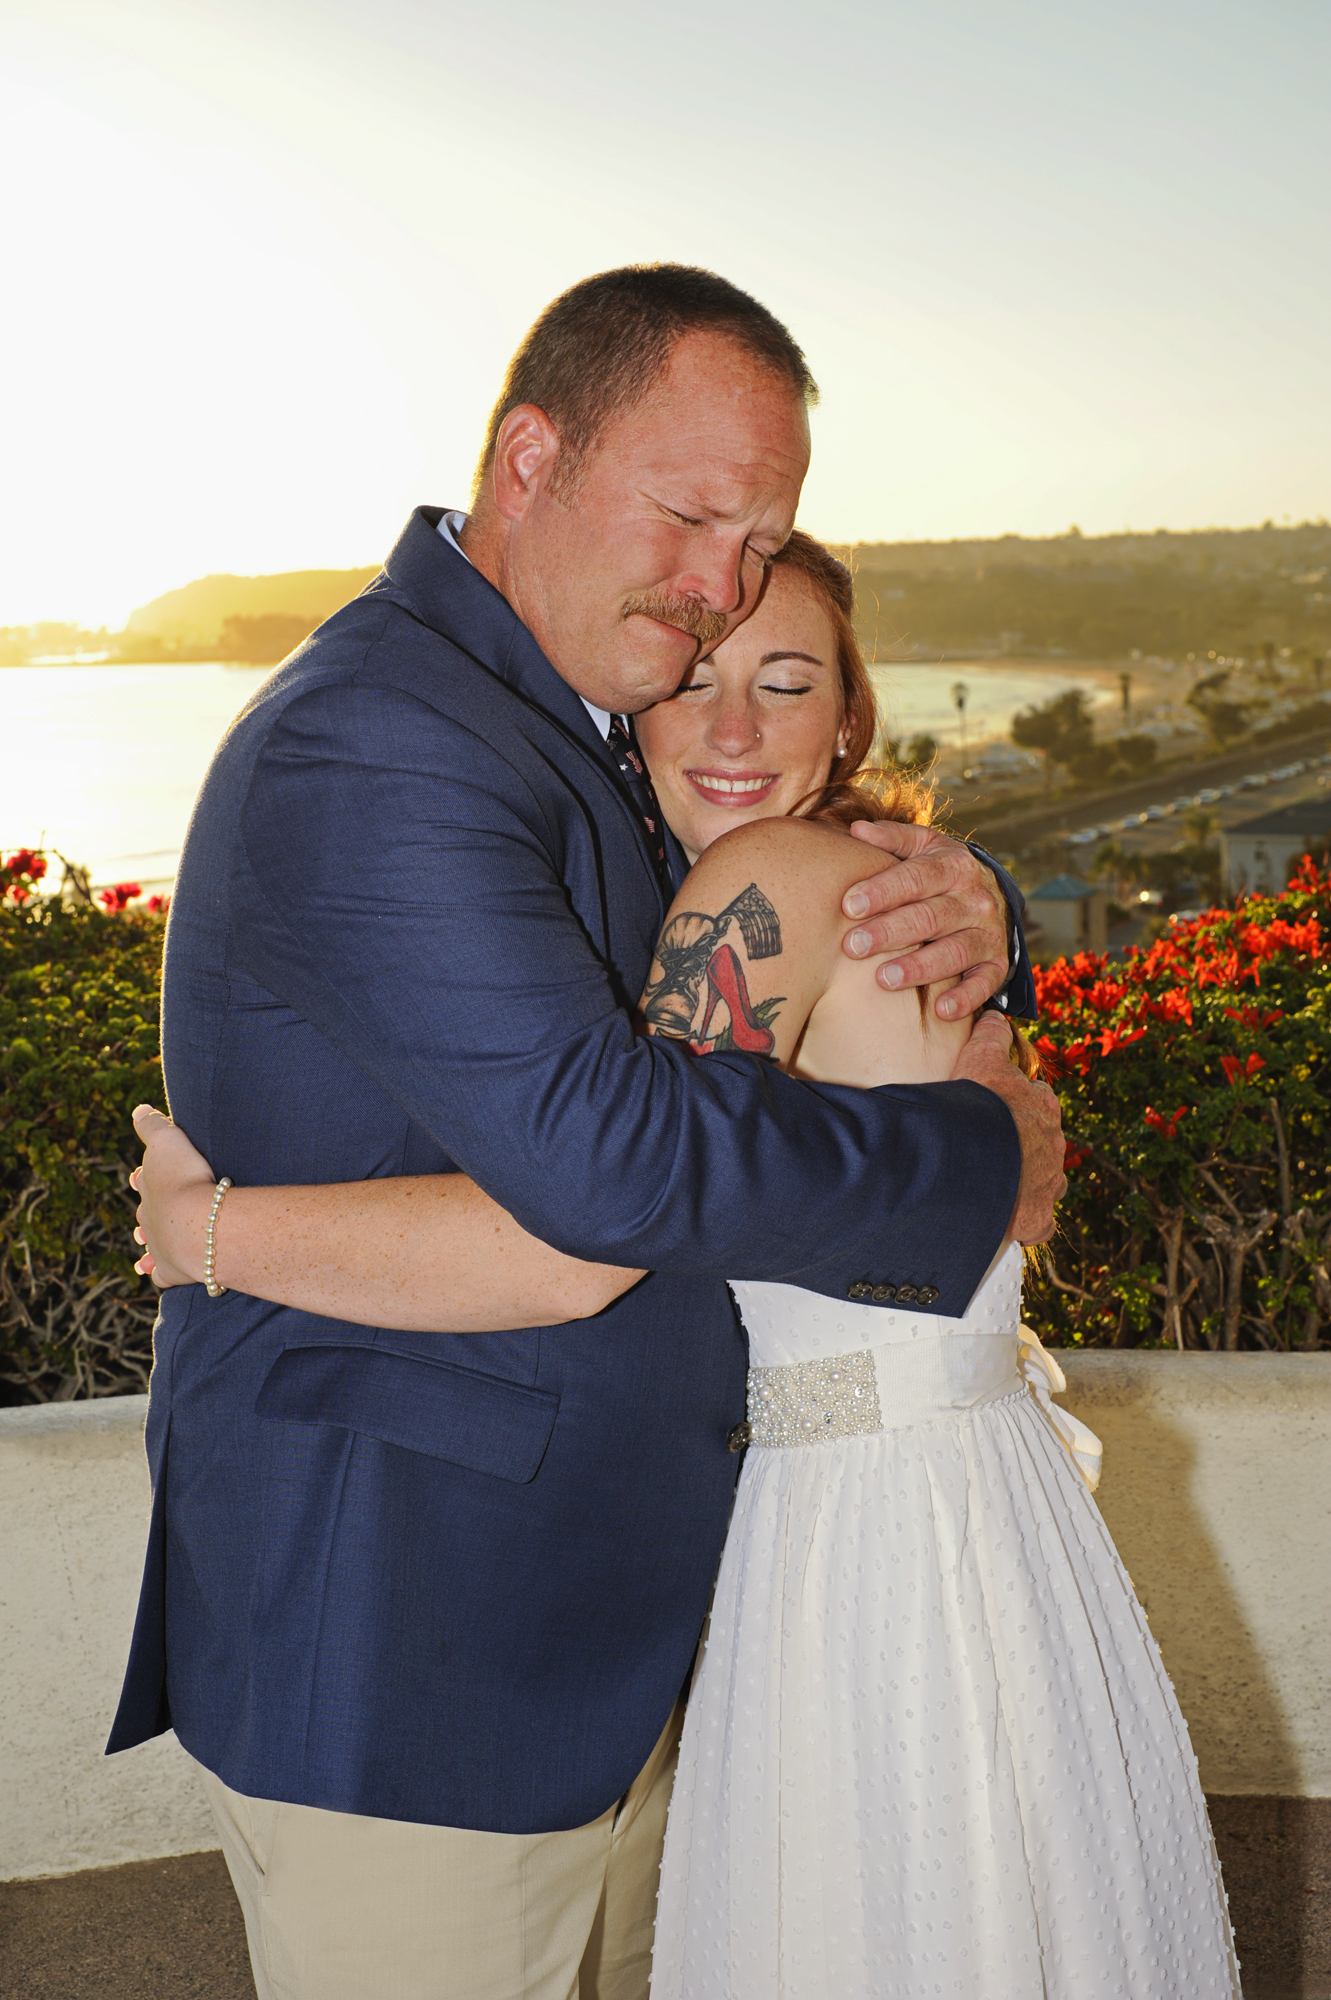 Bride, Kelly Jeans, 20, from Bloomington, Minnesota embraces her father on her wedding day in Dana Point, California on Saturday, September 19, 2015 at the Palisades Gazebo surrounded by their closest family and friends.  Following the ceremony the bride and groom enjoyed the sunset at Capistrano Beach followed by a family dinner.  Boatner is in the army and proposed to his bride at the airport.  The couple describe their relationship as full of fun, wrestling, watching Netflix, and love.